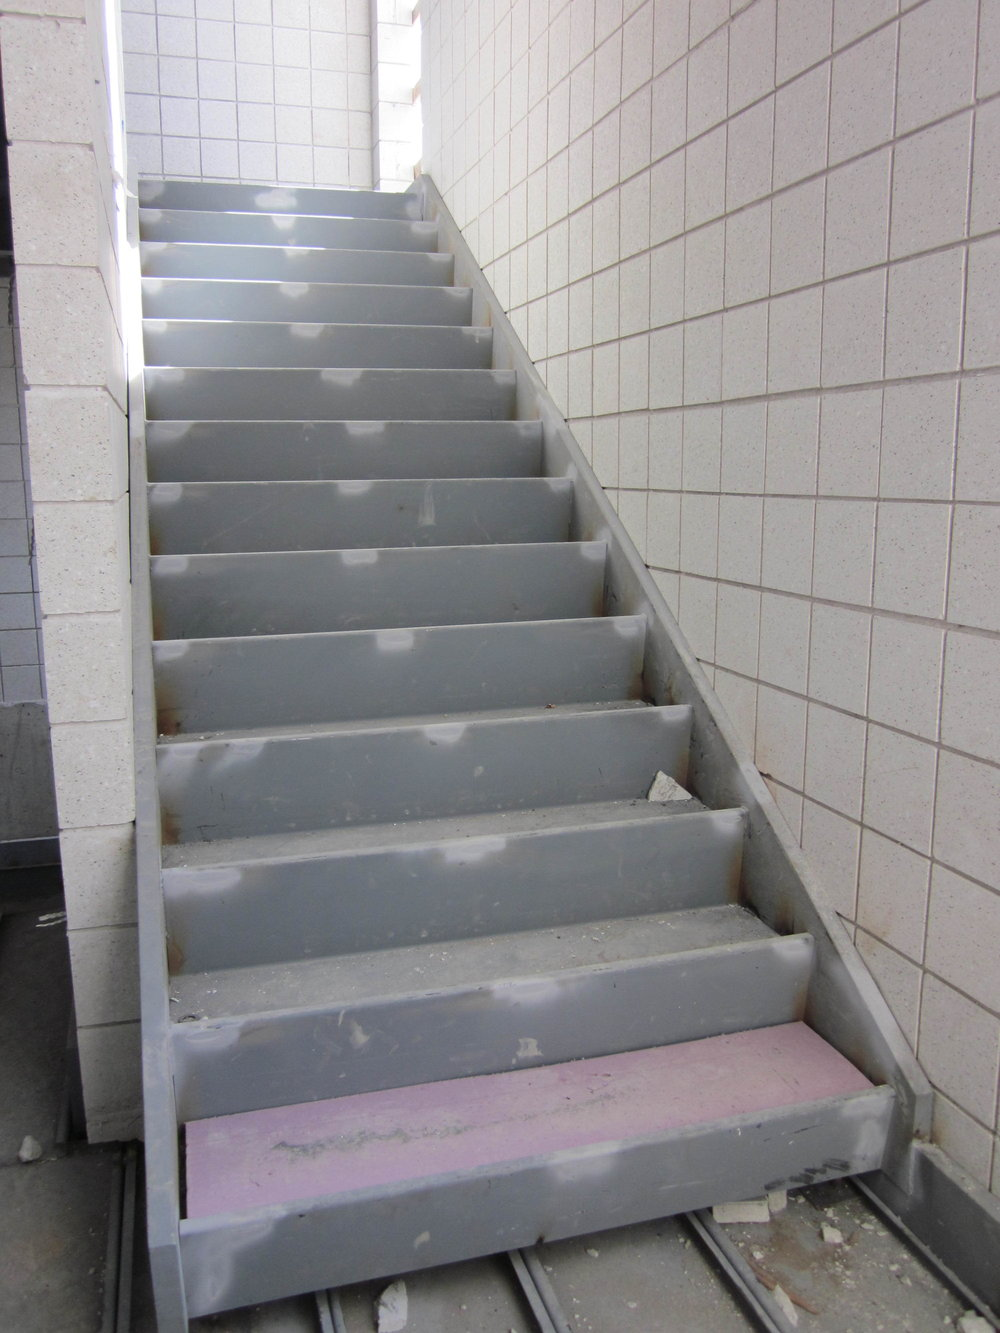 Main to upper floor stairs  05.18.2018.JPG